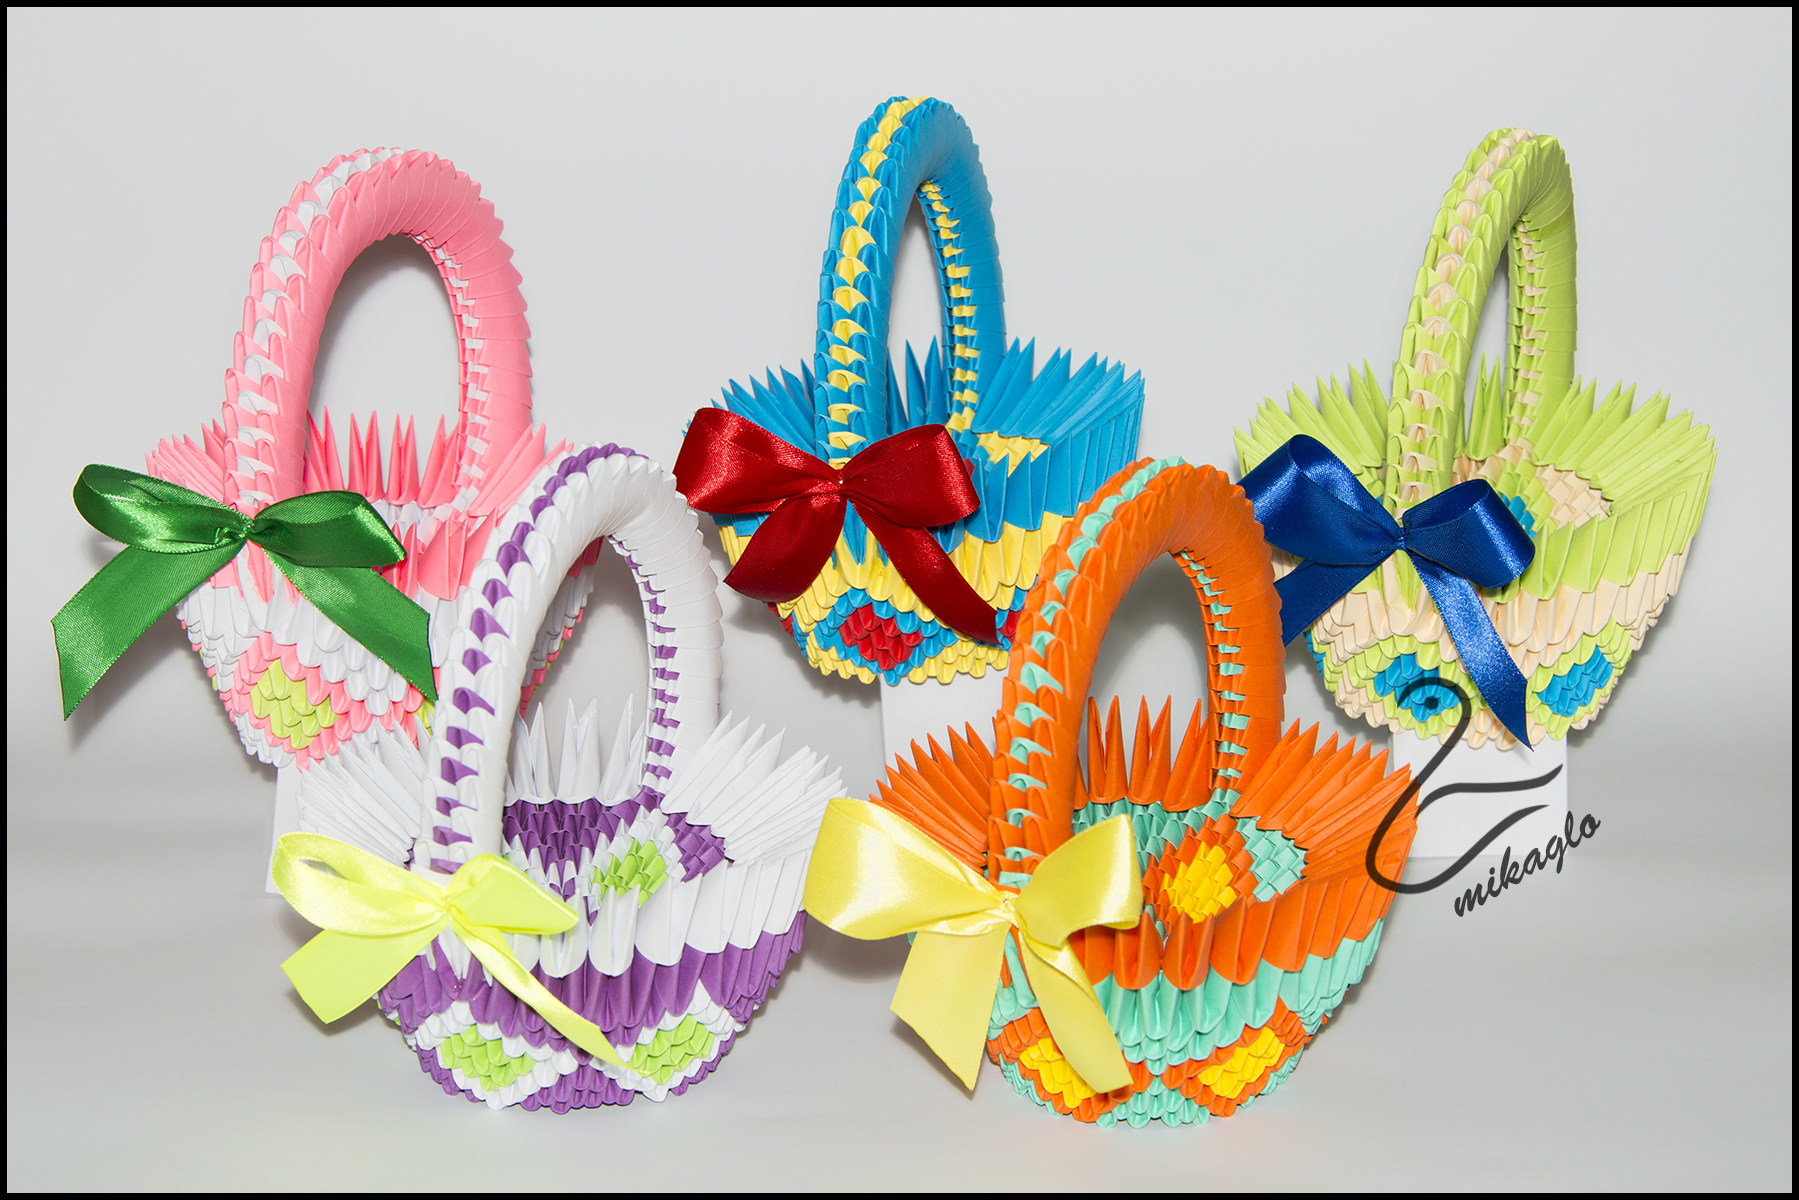 mikaglo Origami 3d Baskets Easter by Majka16g on DeviantArt